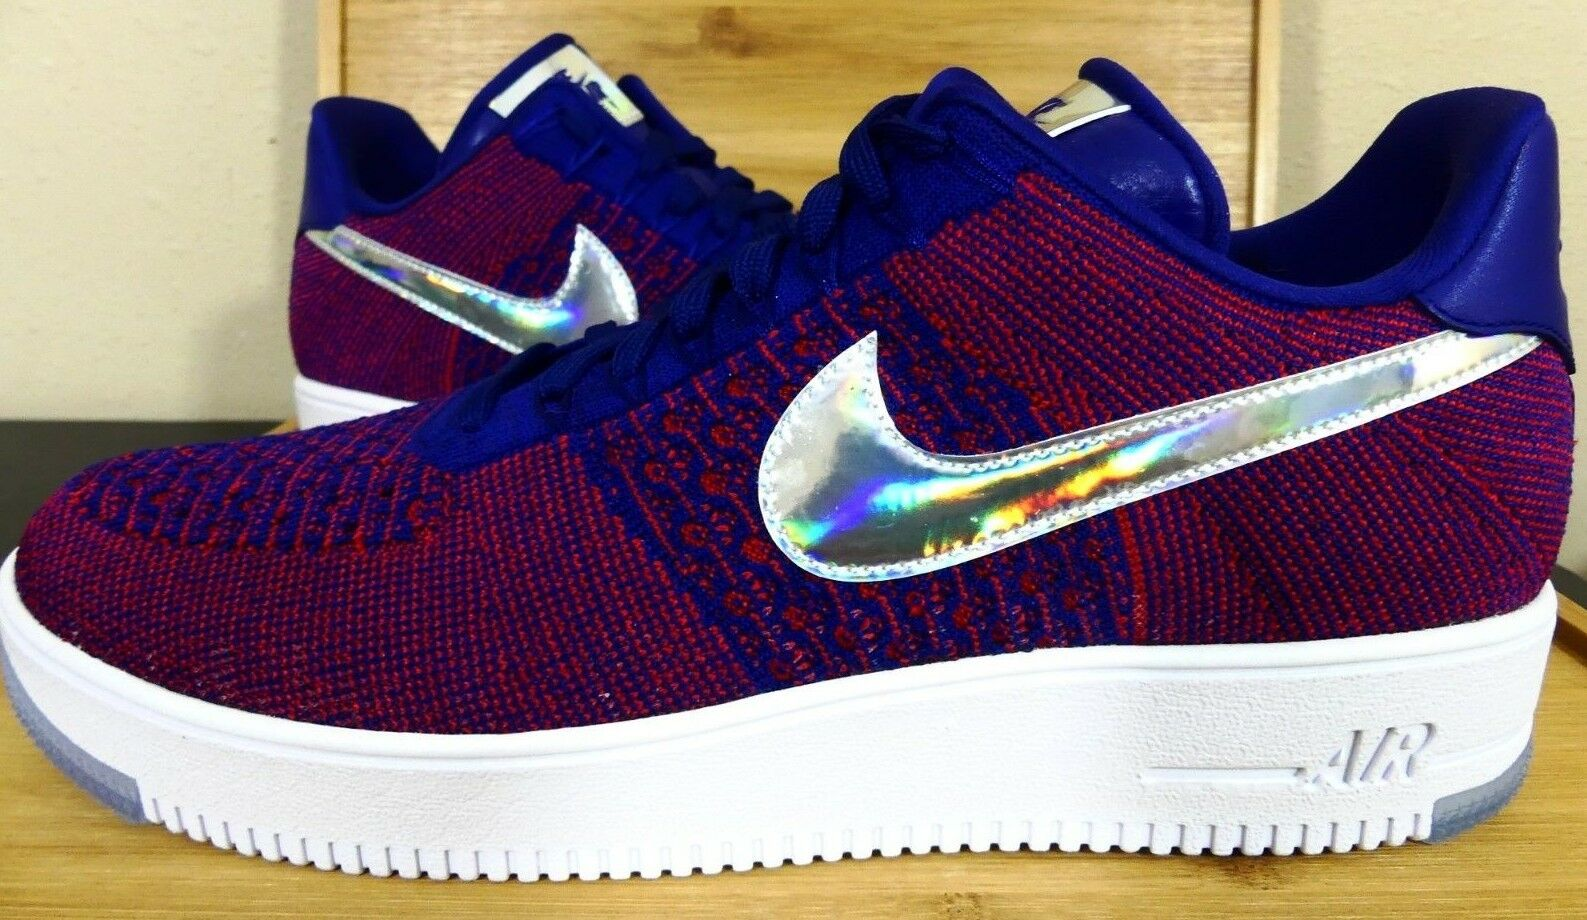 New Nike Air Force 1 Low Ultra Flyknit Size 11 Olympic Red White bluee 826577-601